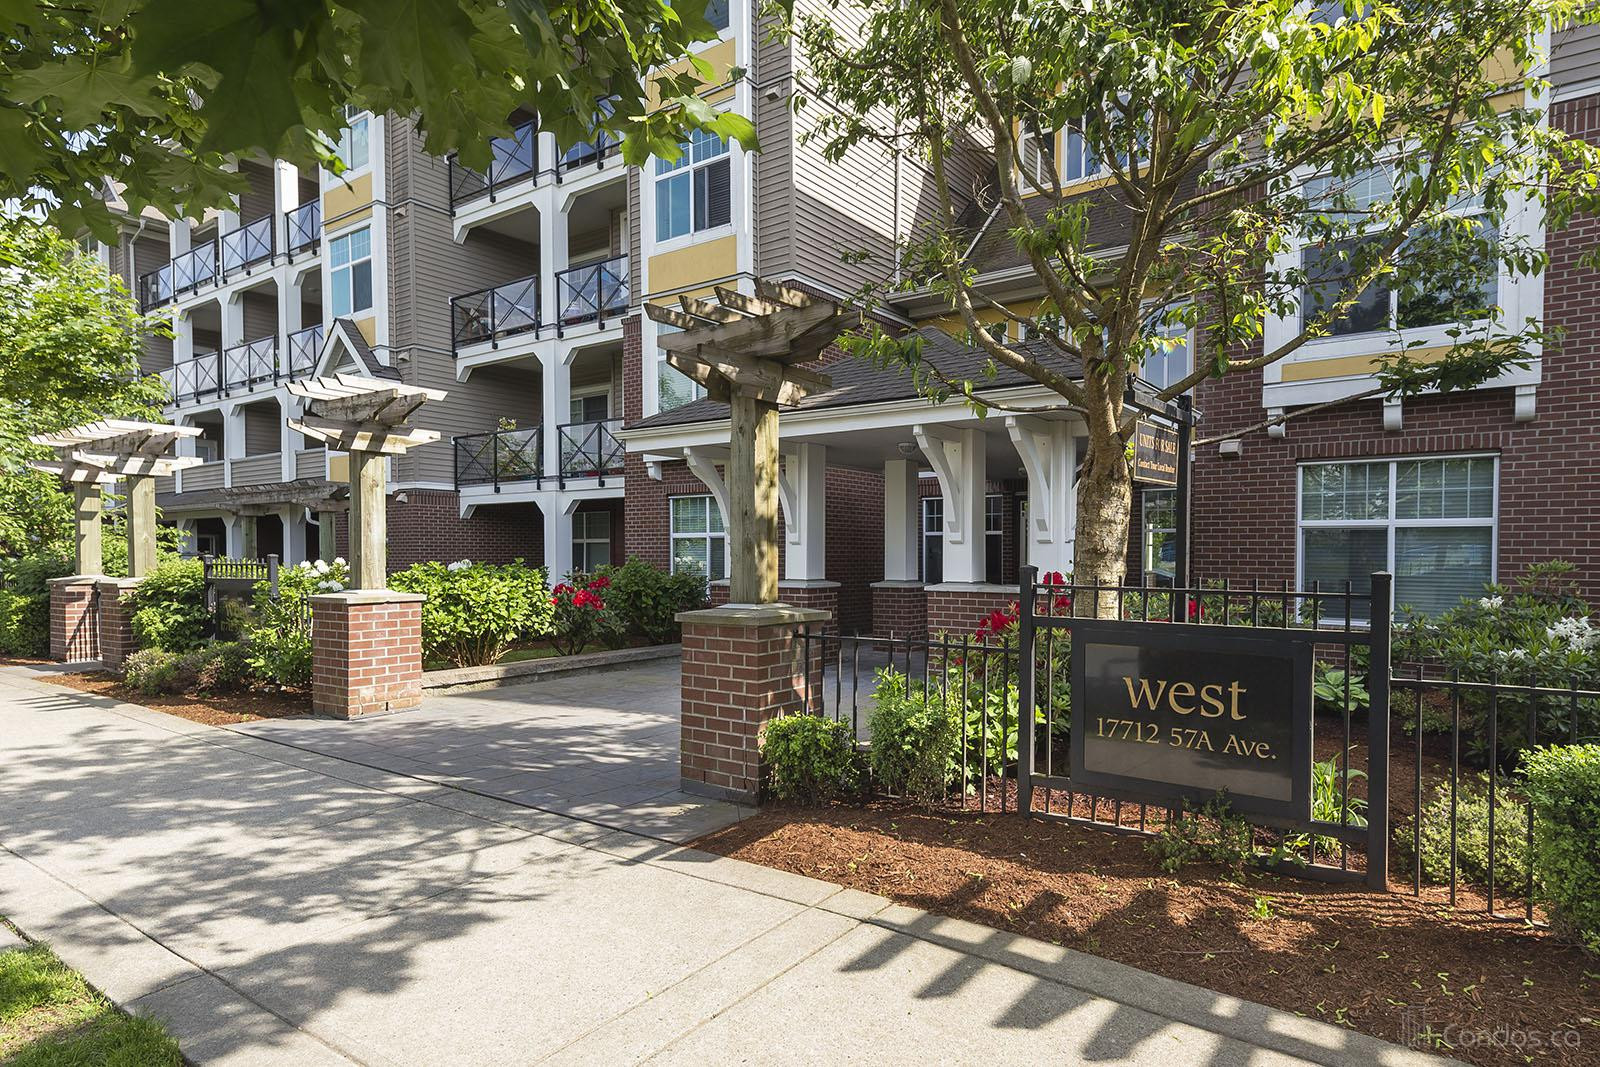 West On The Village Walk at 17712 57a Ave, Surrey 1